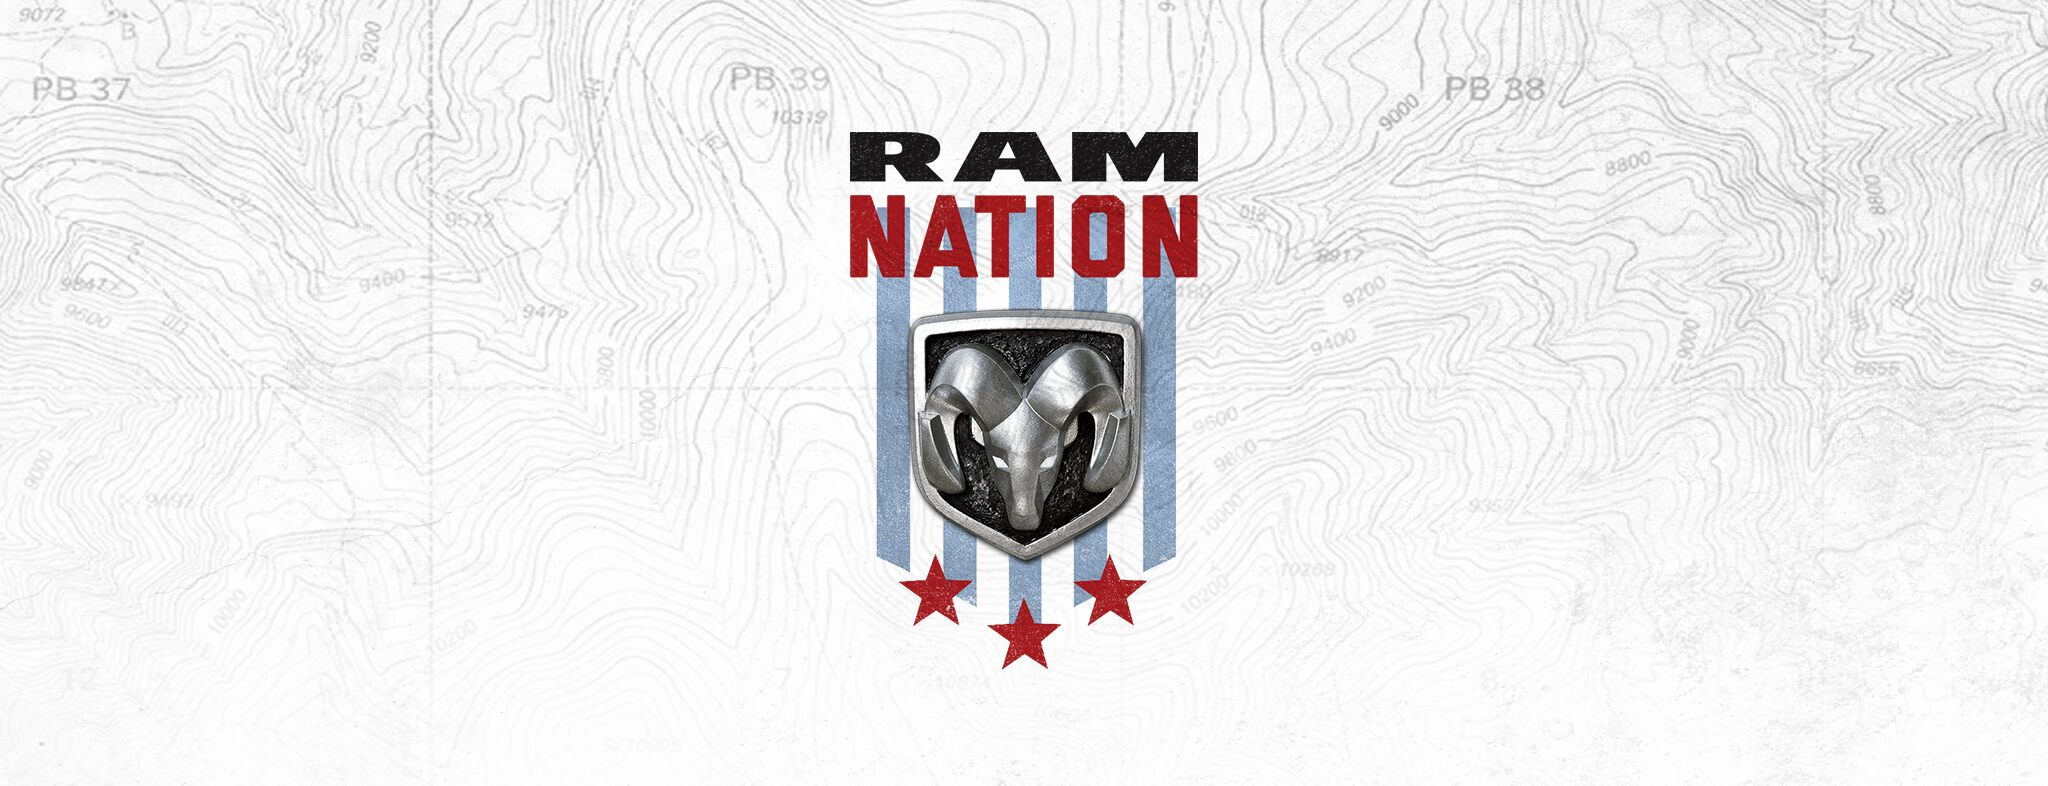 Logo de Ram Nation.